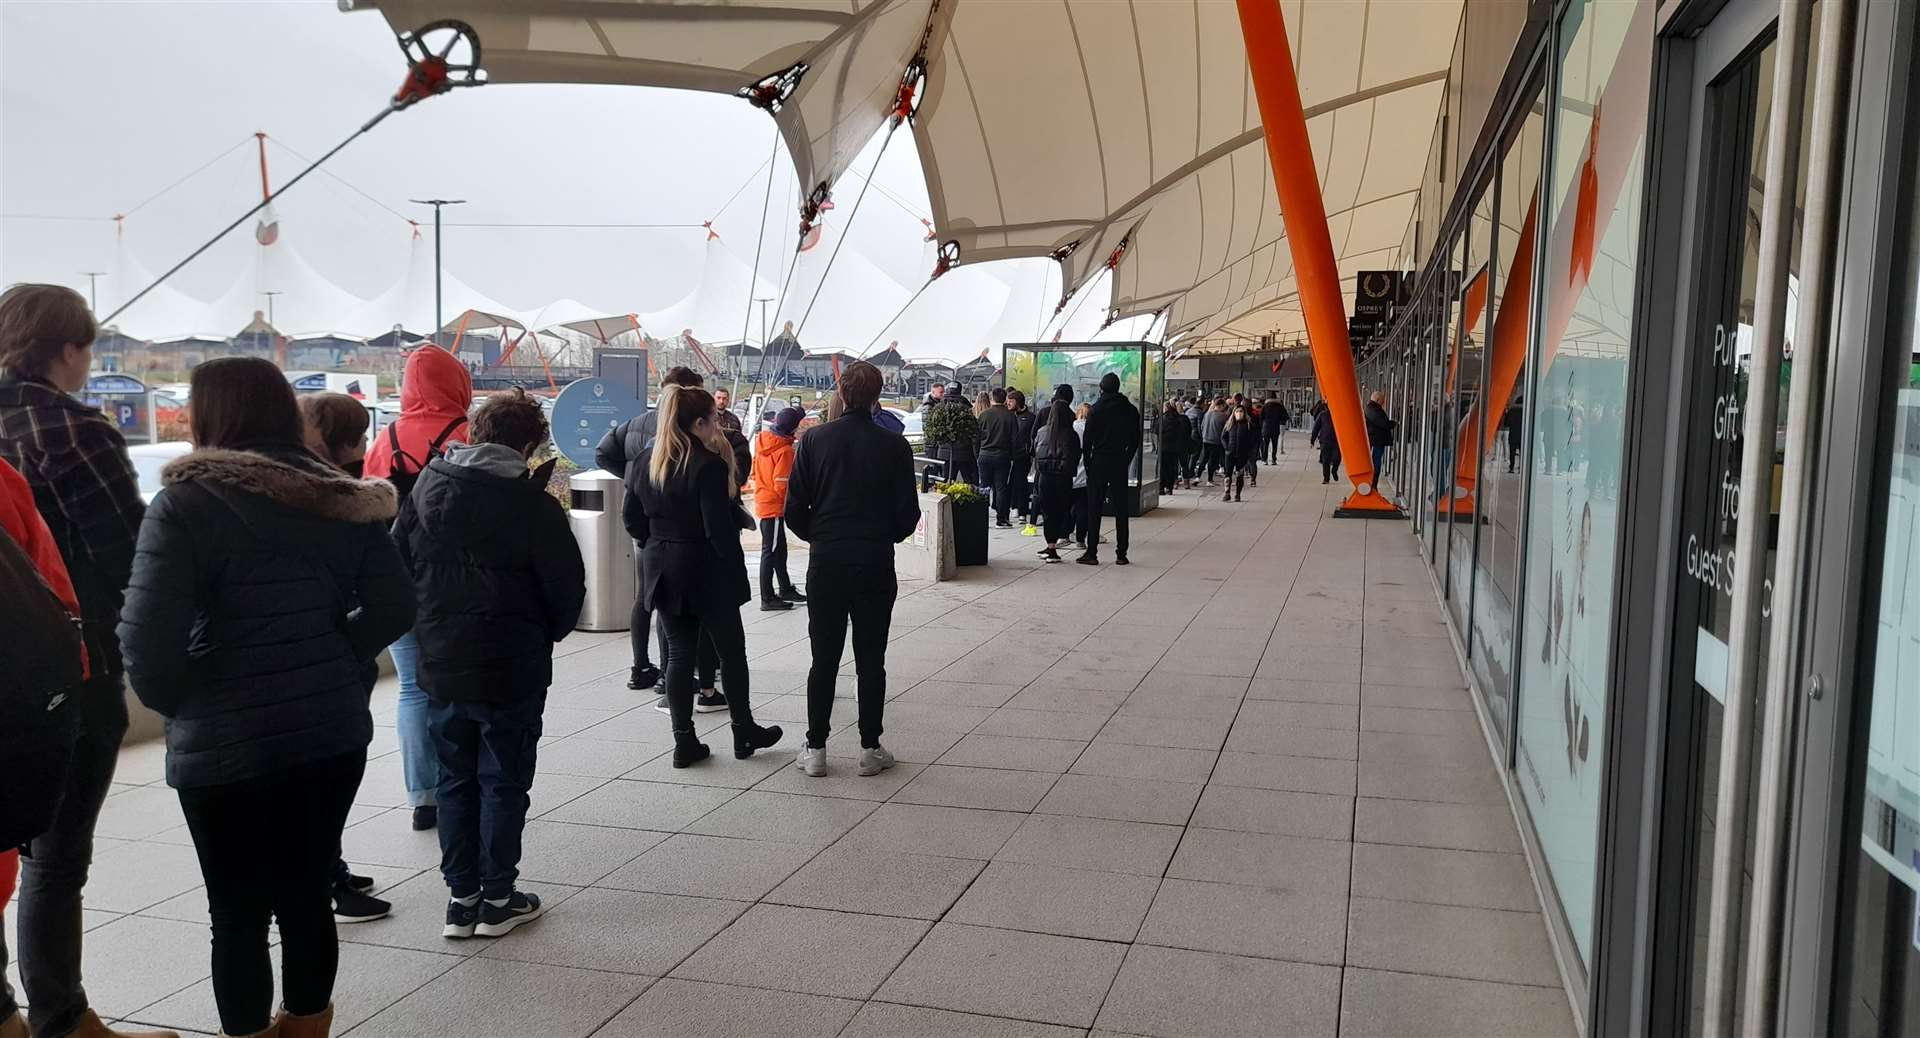 Even with a little bit of snow in the air, the Designer Outlet was busy first thing this morning